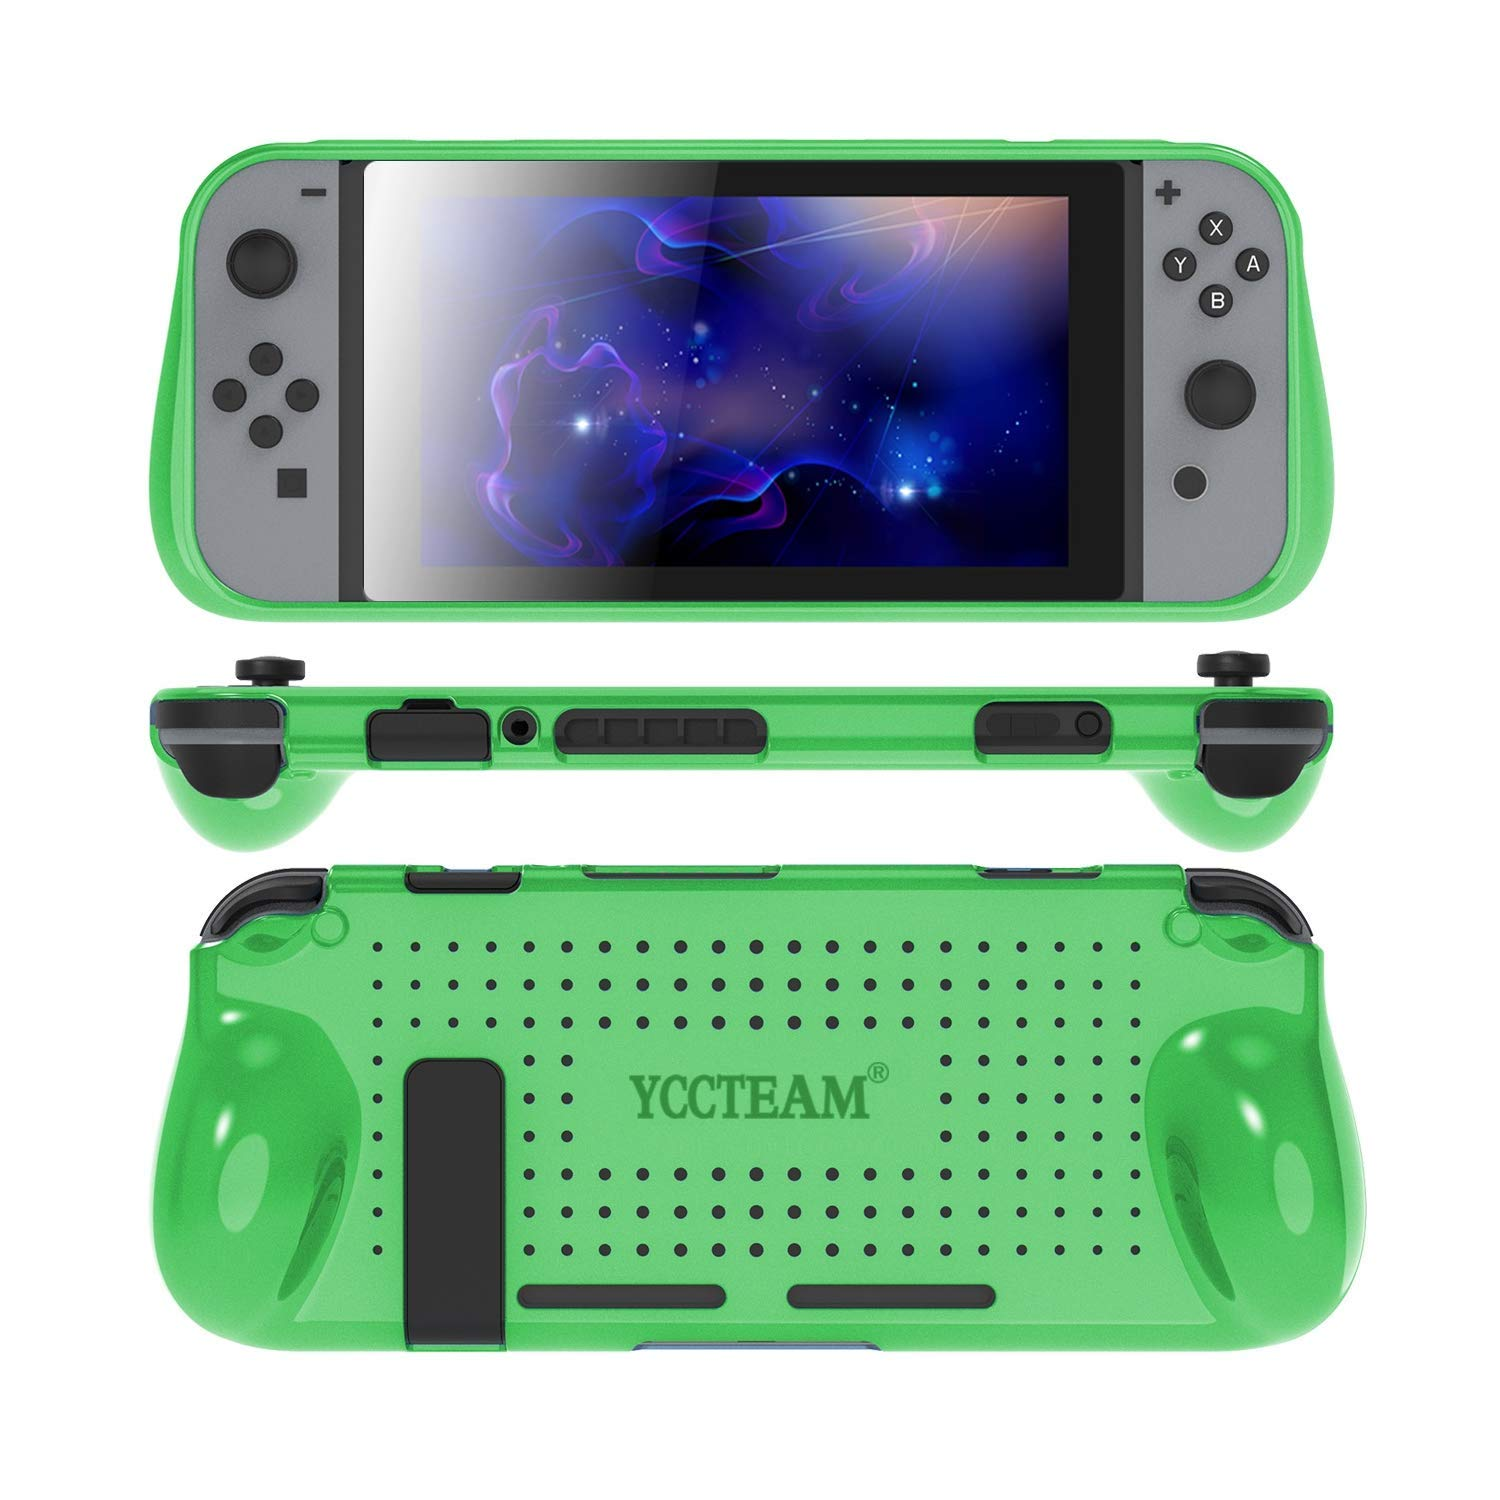 Protective Case for Nintendo Switch, Comfortable Soft TPU Full Body Protection Shock Absorption Heat Dissipation Design Cover Case for Nintendo Switch (Green)